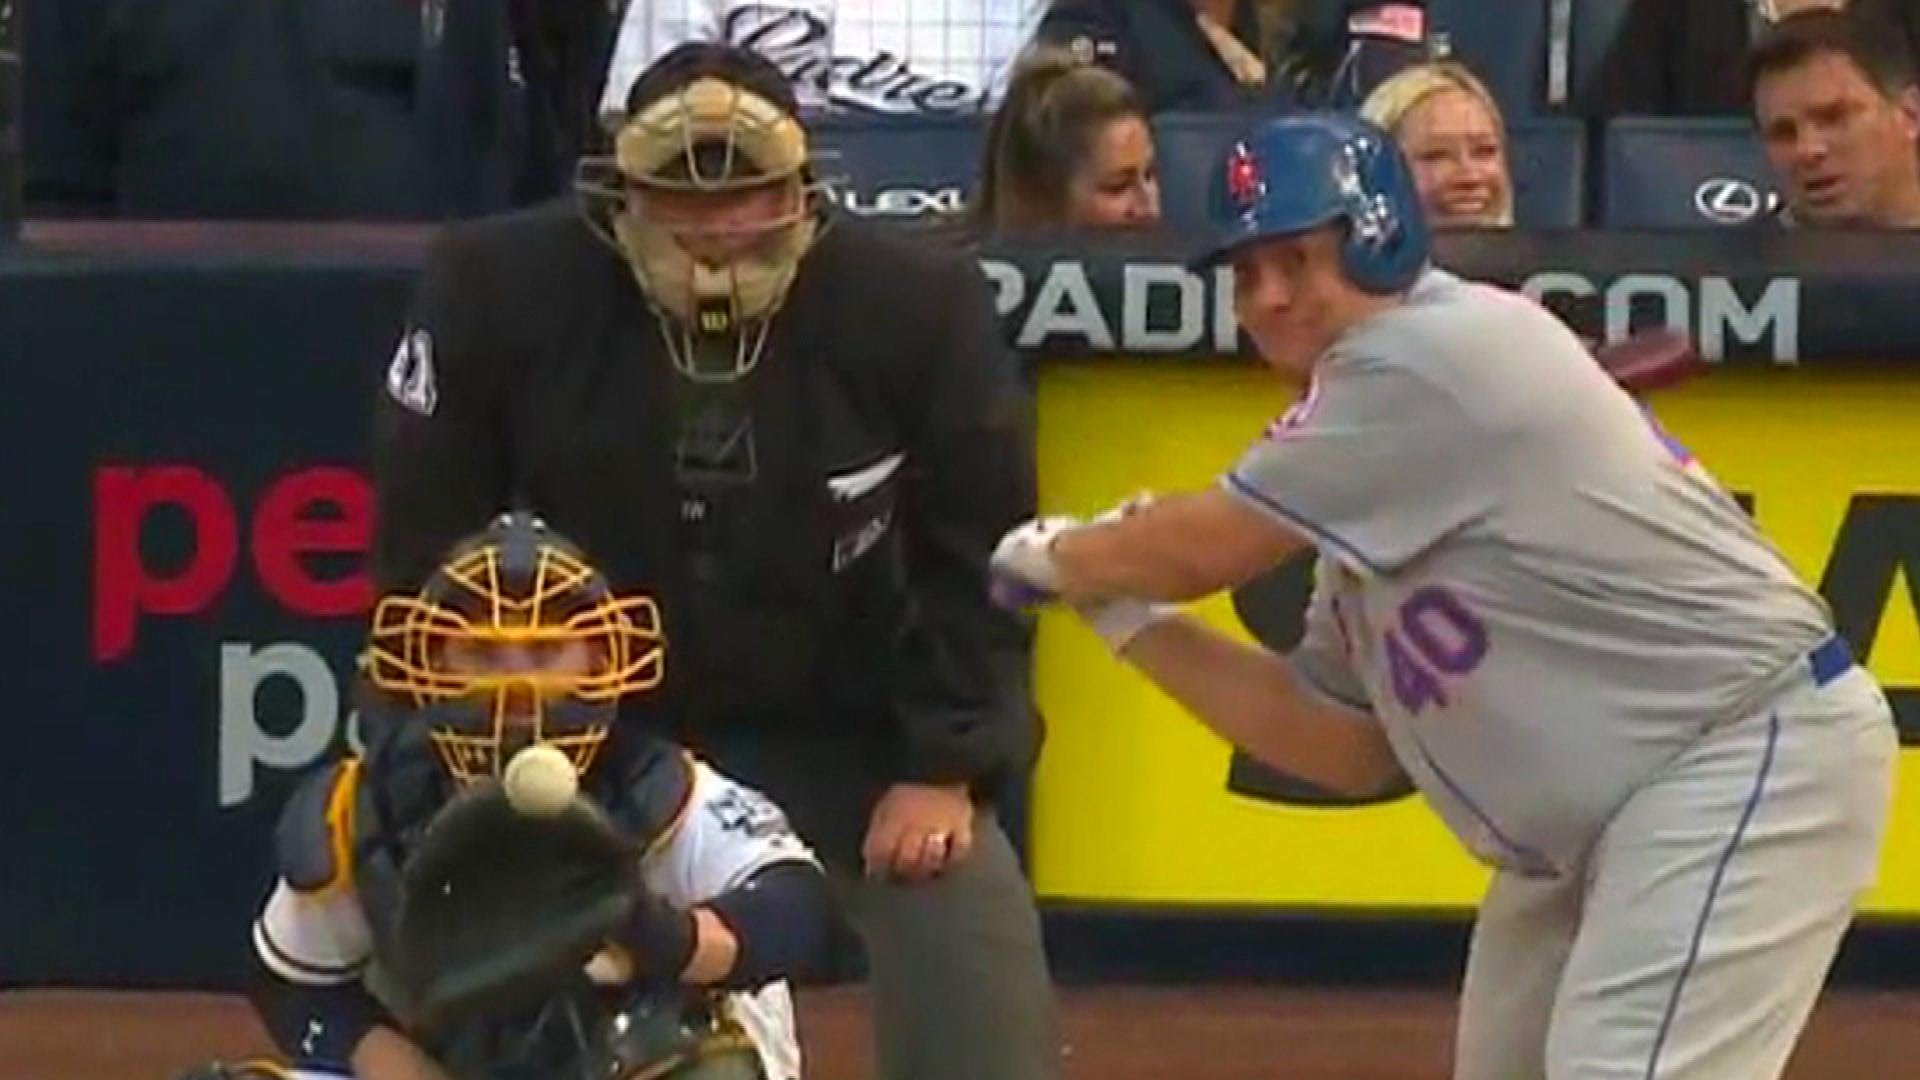 Bartolo Colon's home run gets flipped with the movie